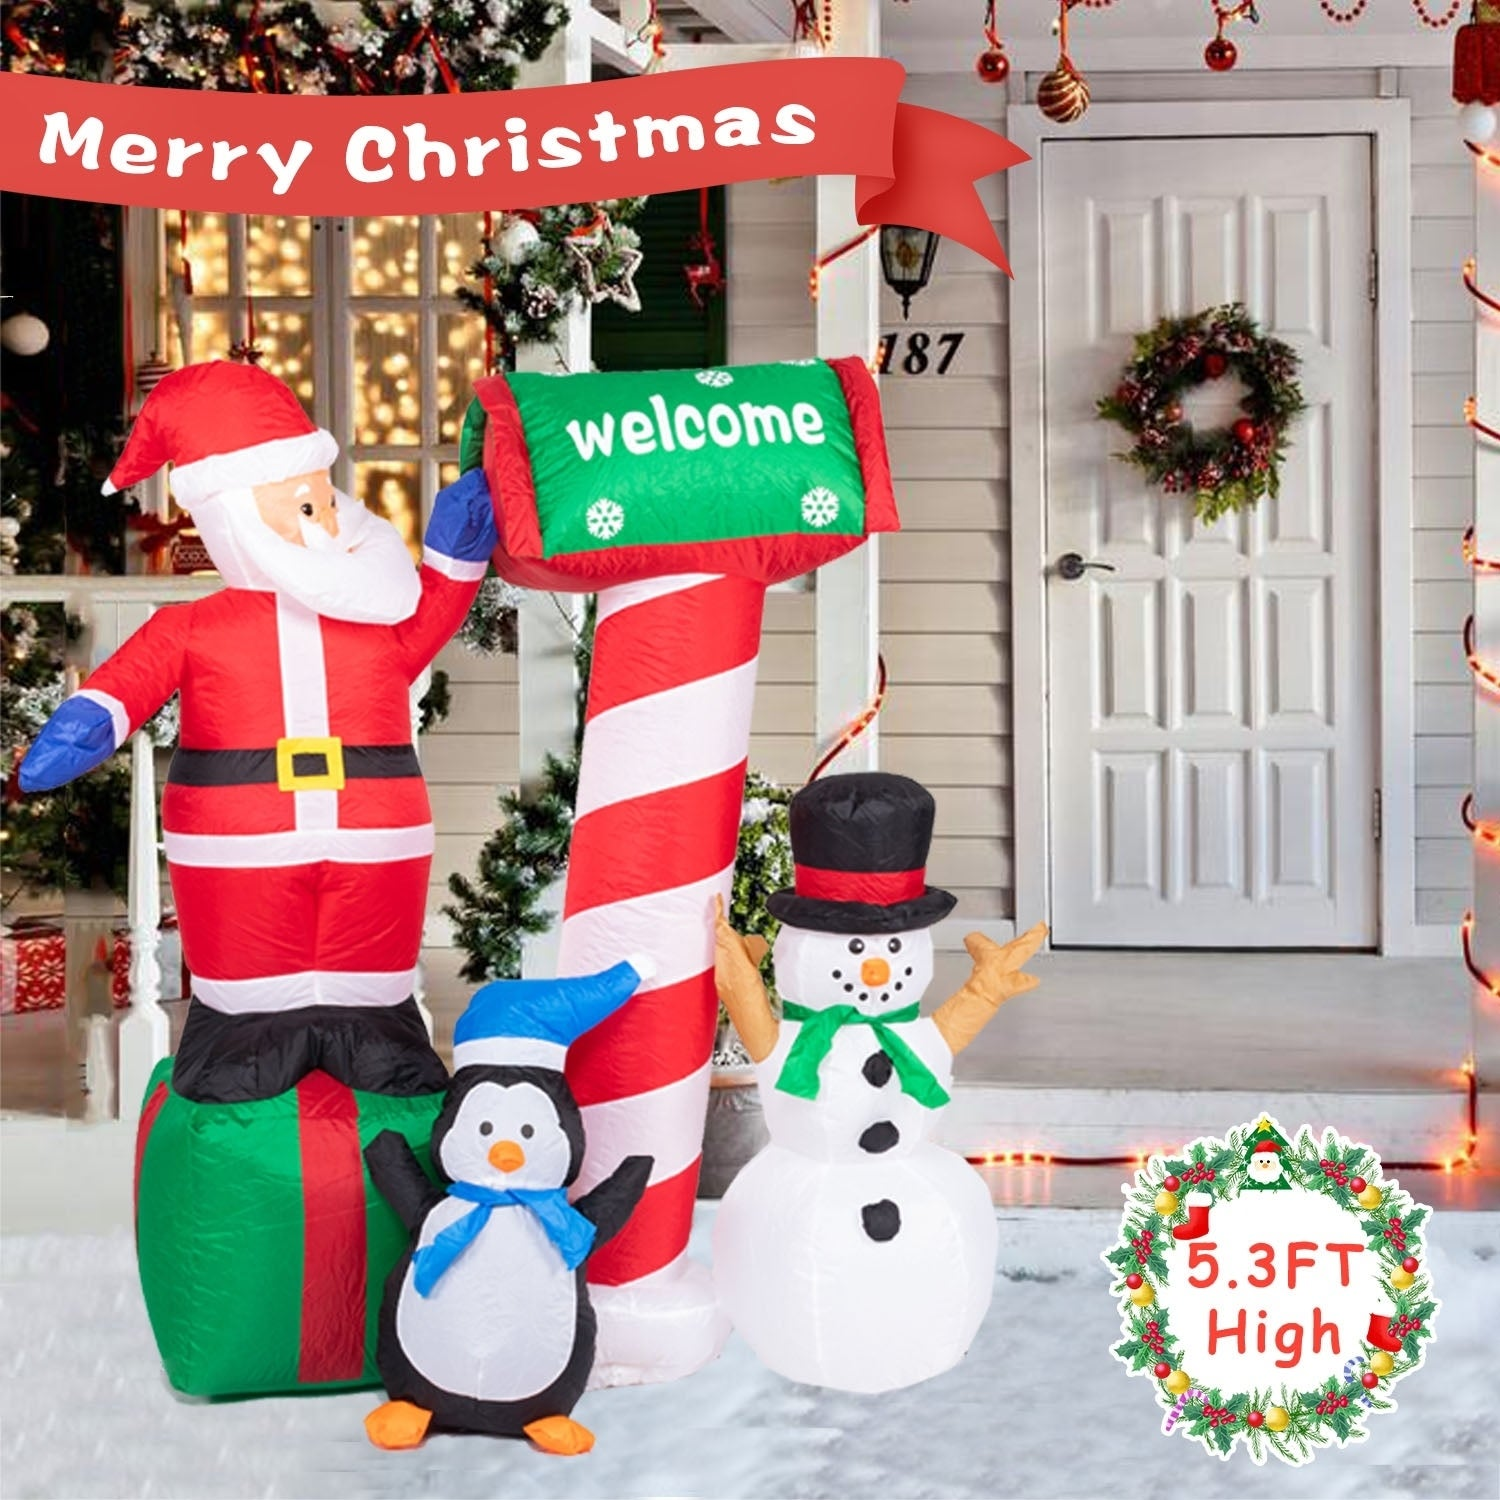 Kinbor 5 3Ft Inflatable Christmas Santa Snowman Indoor Outdoor Air Blown Lawn Party Decoration